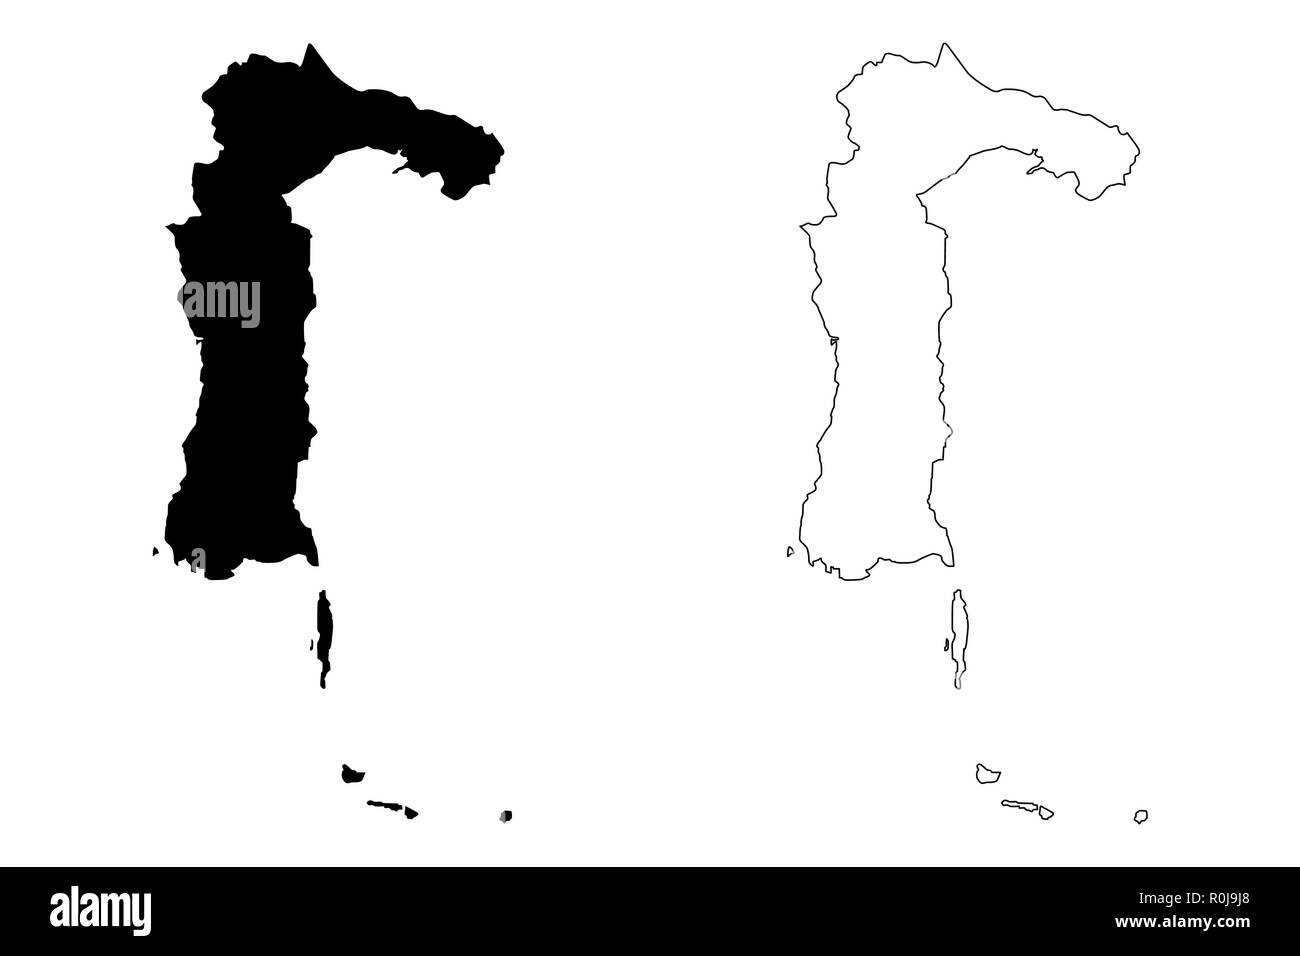 South Sulawesi (Subdivisions of Indonesia, Provinces of Indonesia) map vector illustration, scribble sketch South Sulawesi map - Stock Image